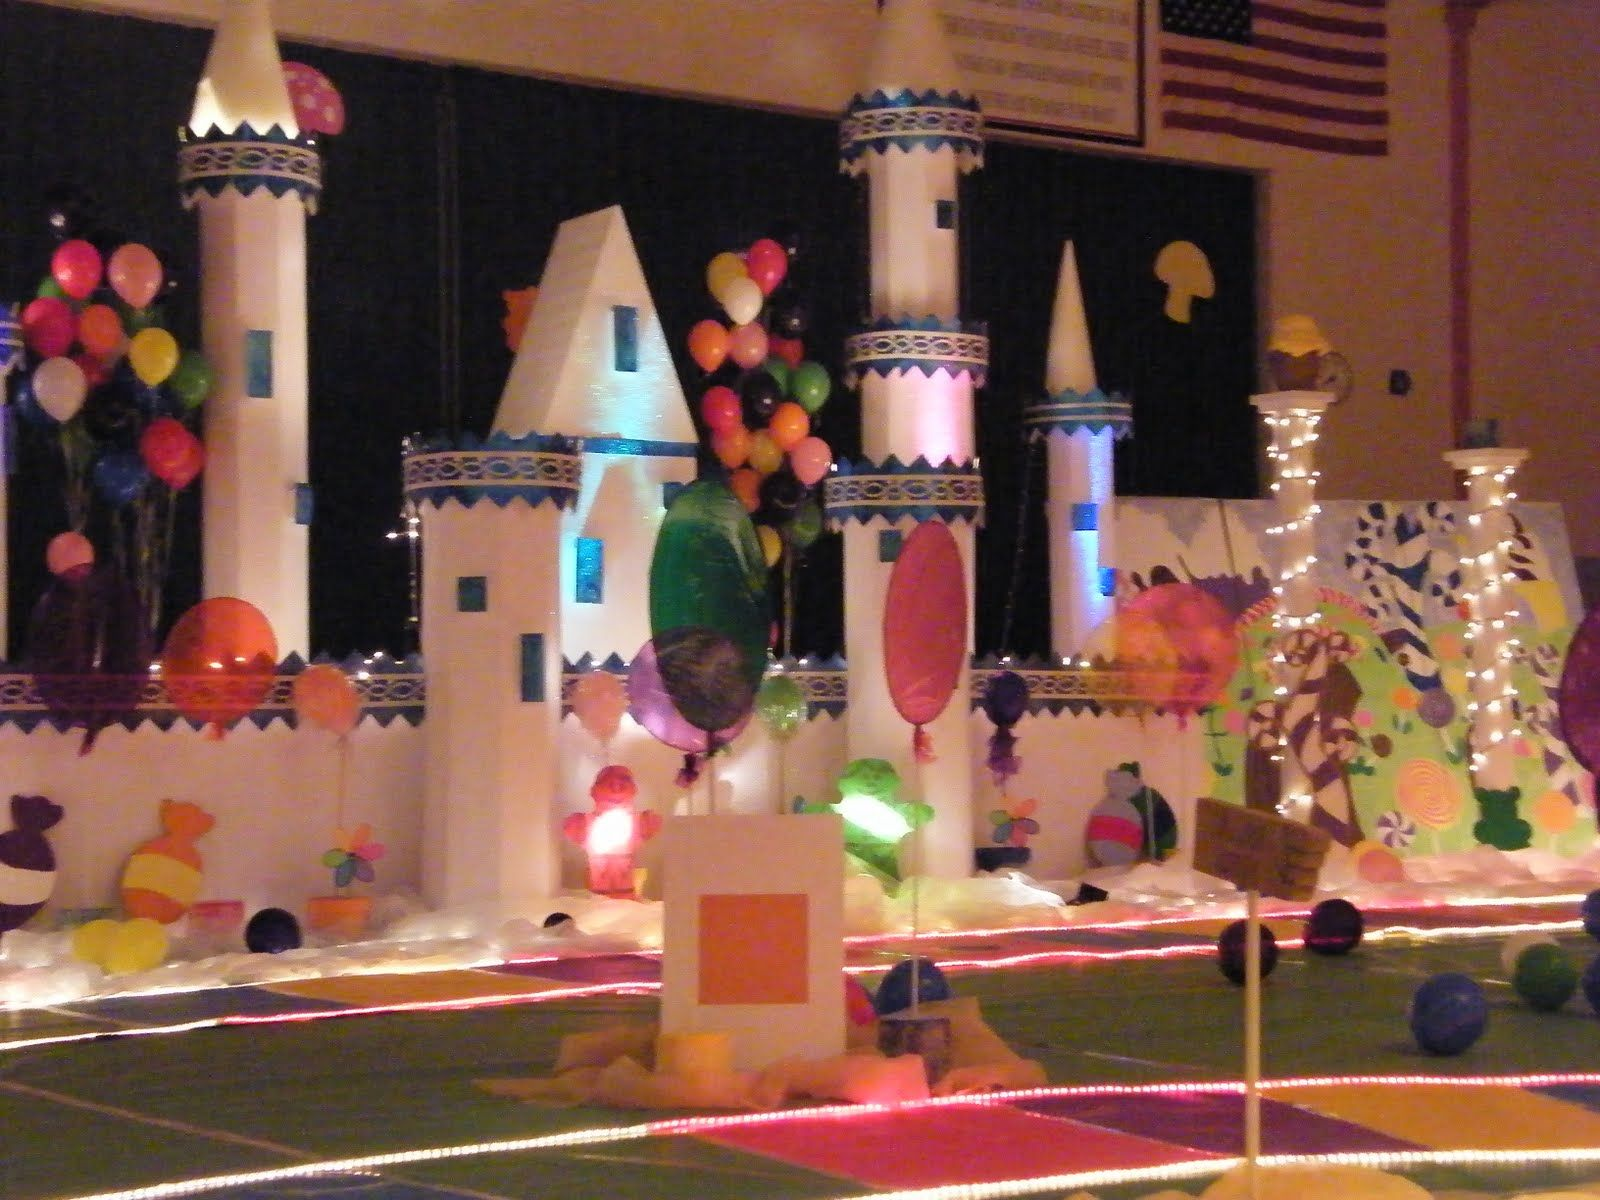 Prom ideas candyland | The prom theme was Candyland and here is the very cool castle & Prom ideas candyland | The prom theme was Candyland and here is the ...